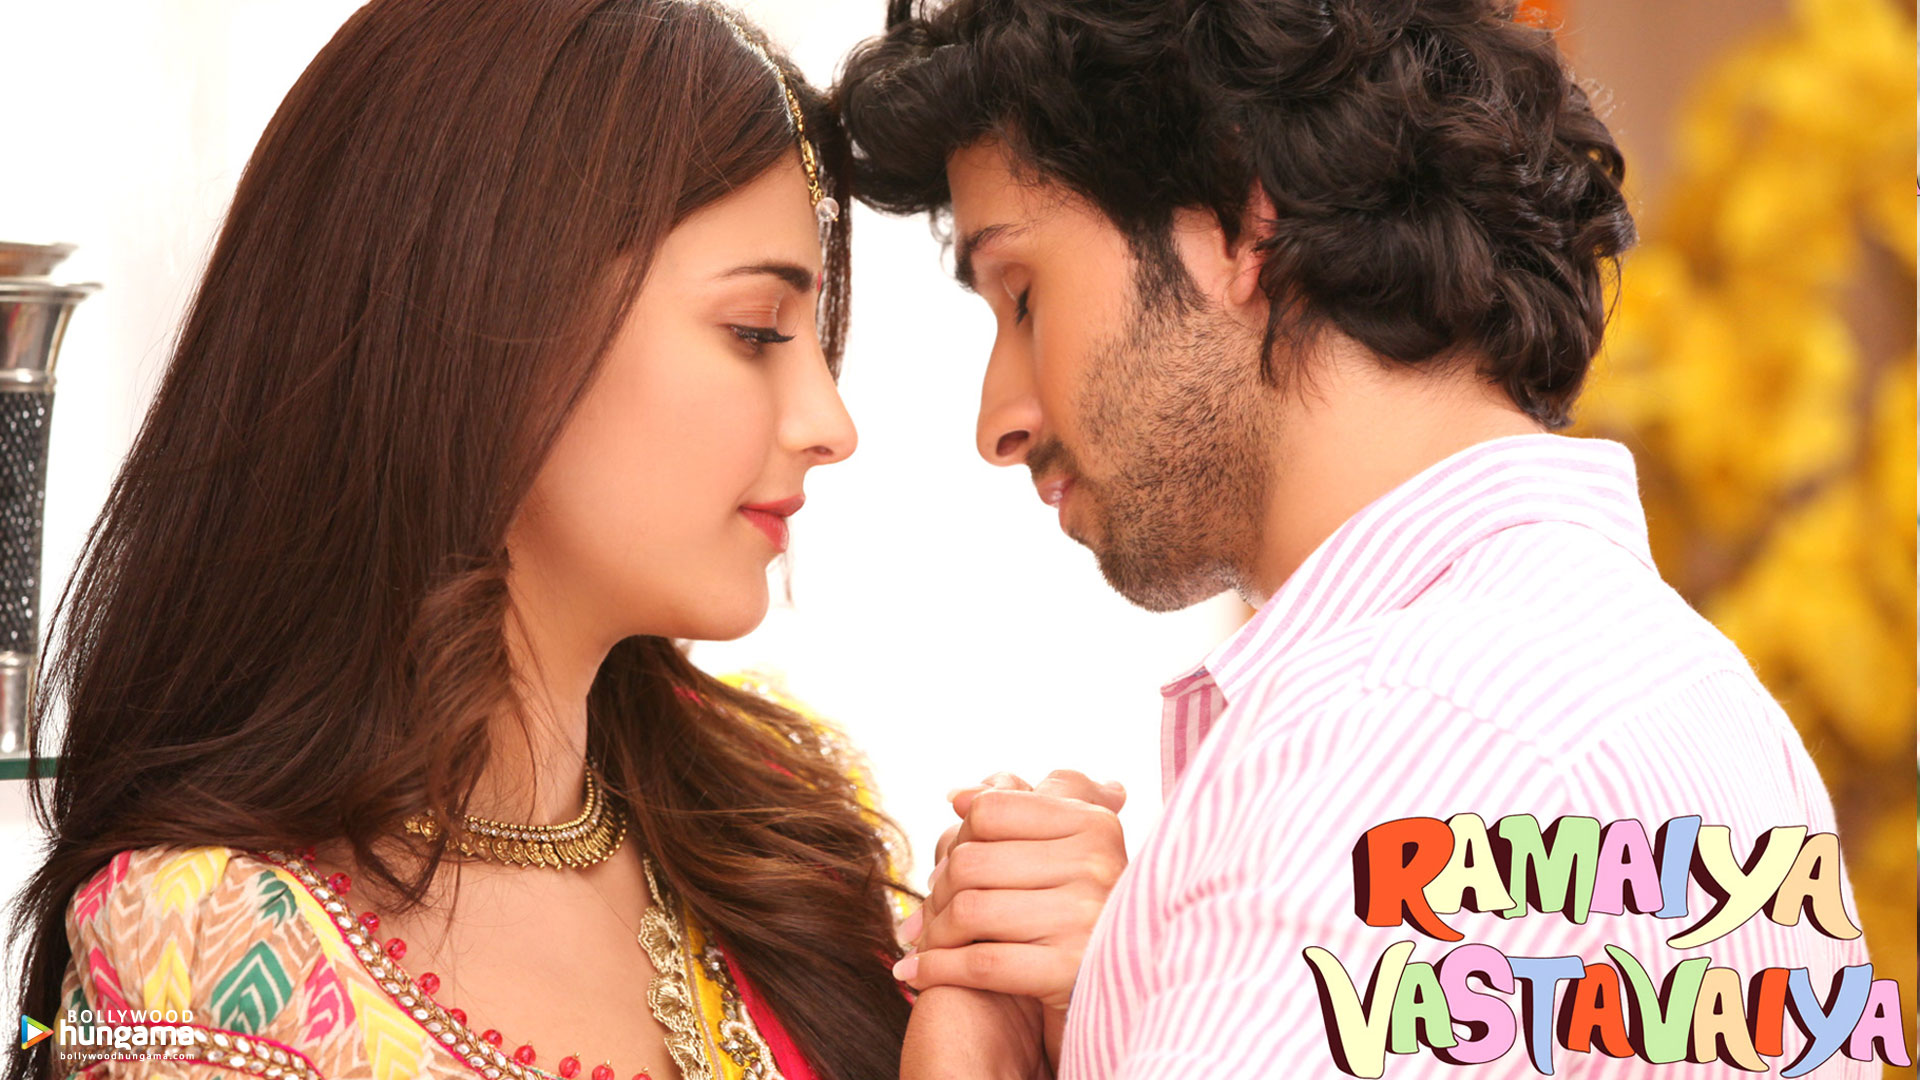 ramaiya vastavaiya movie video mp4 download : manufacturedlimited.gq